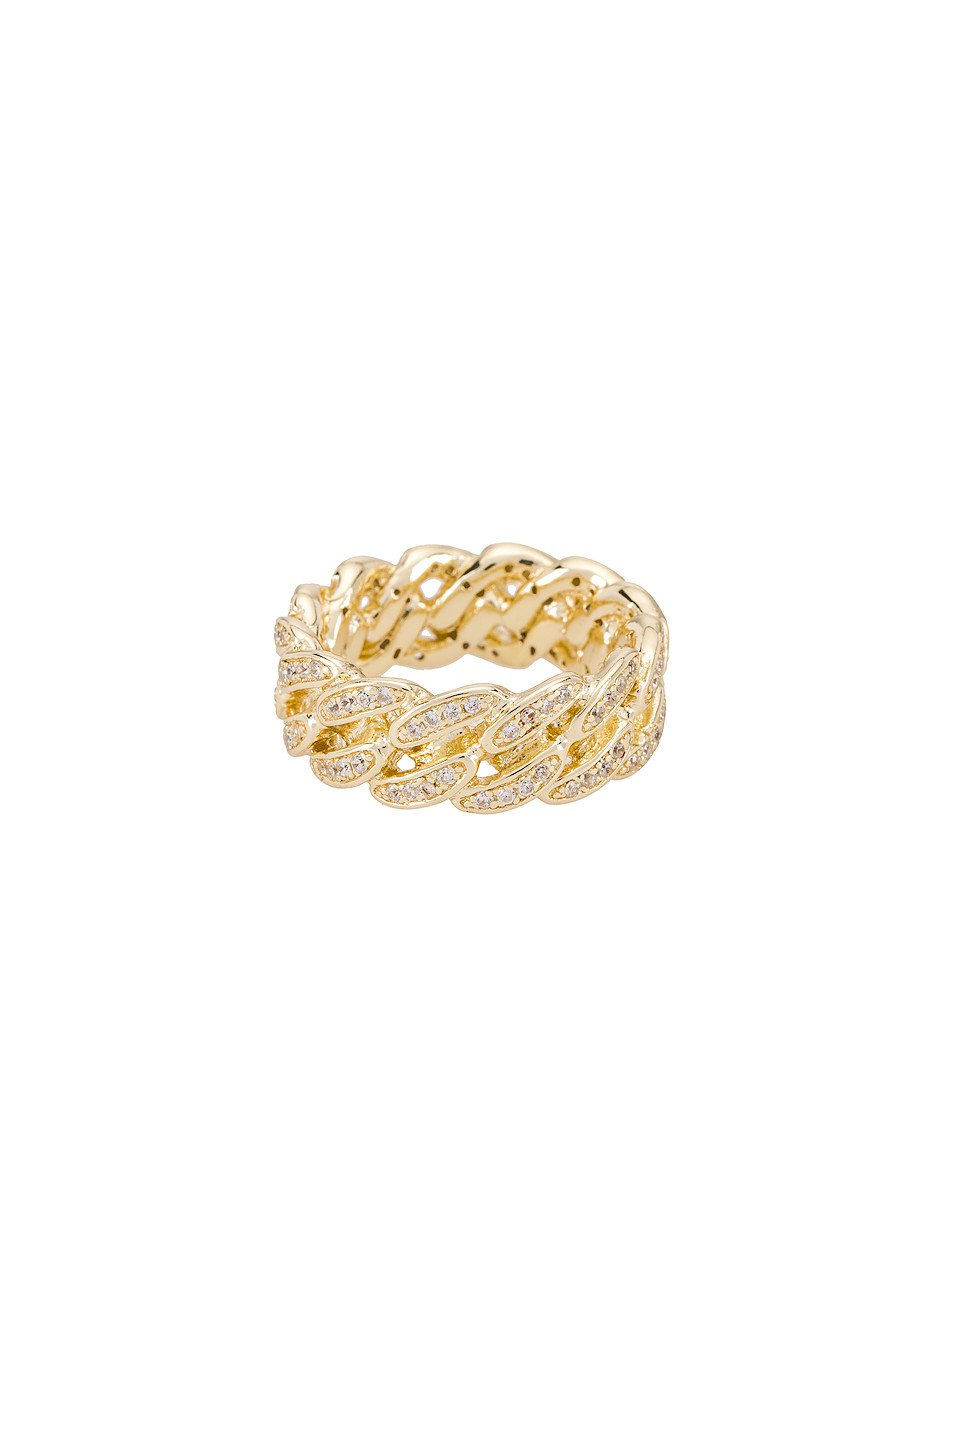 The Iced Cuban Link II Ring